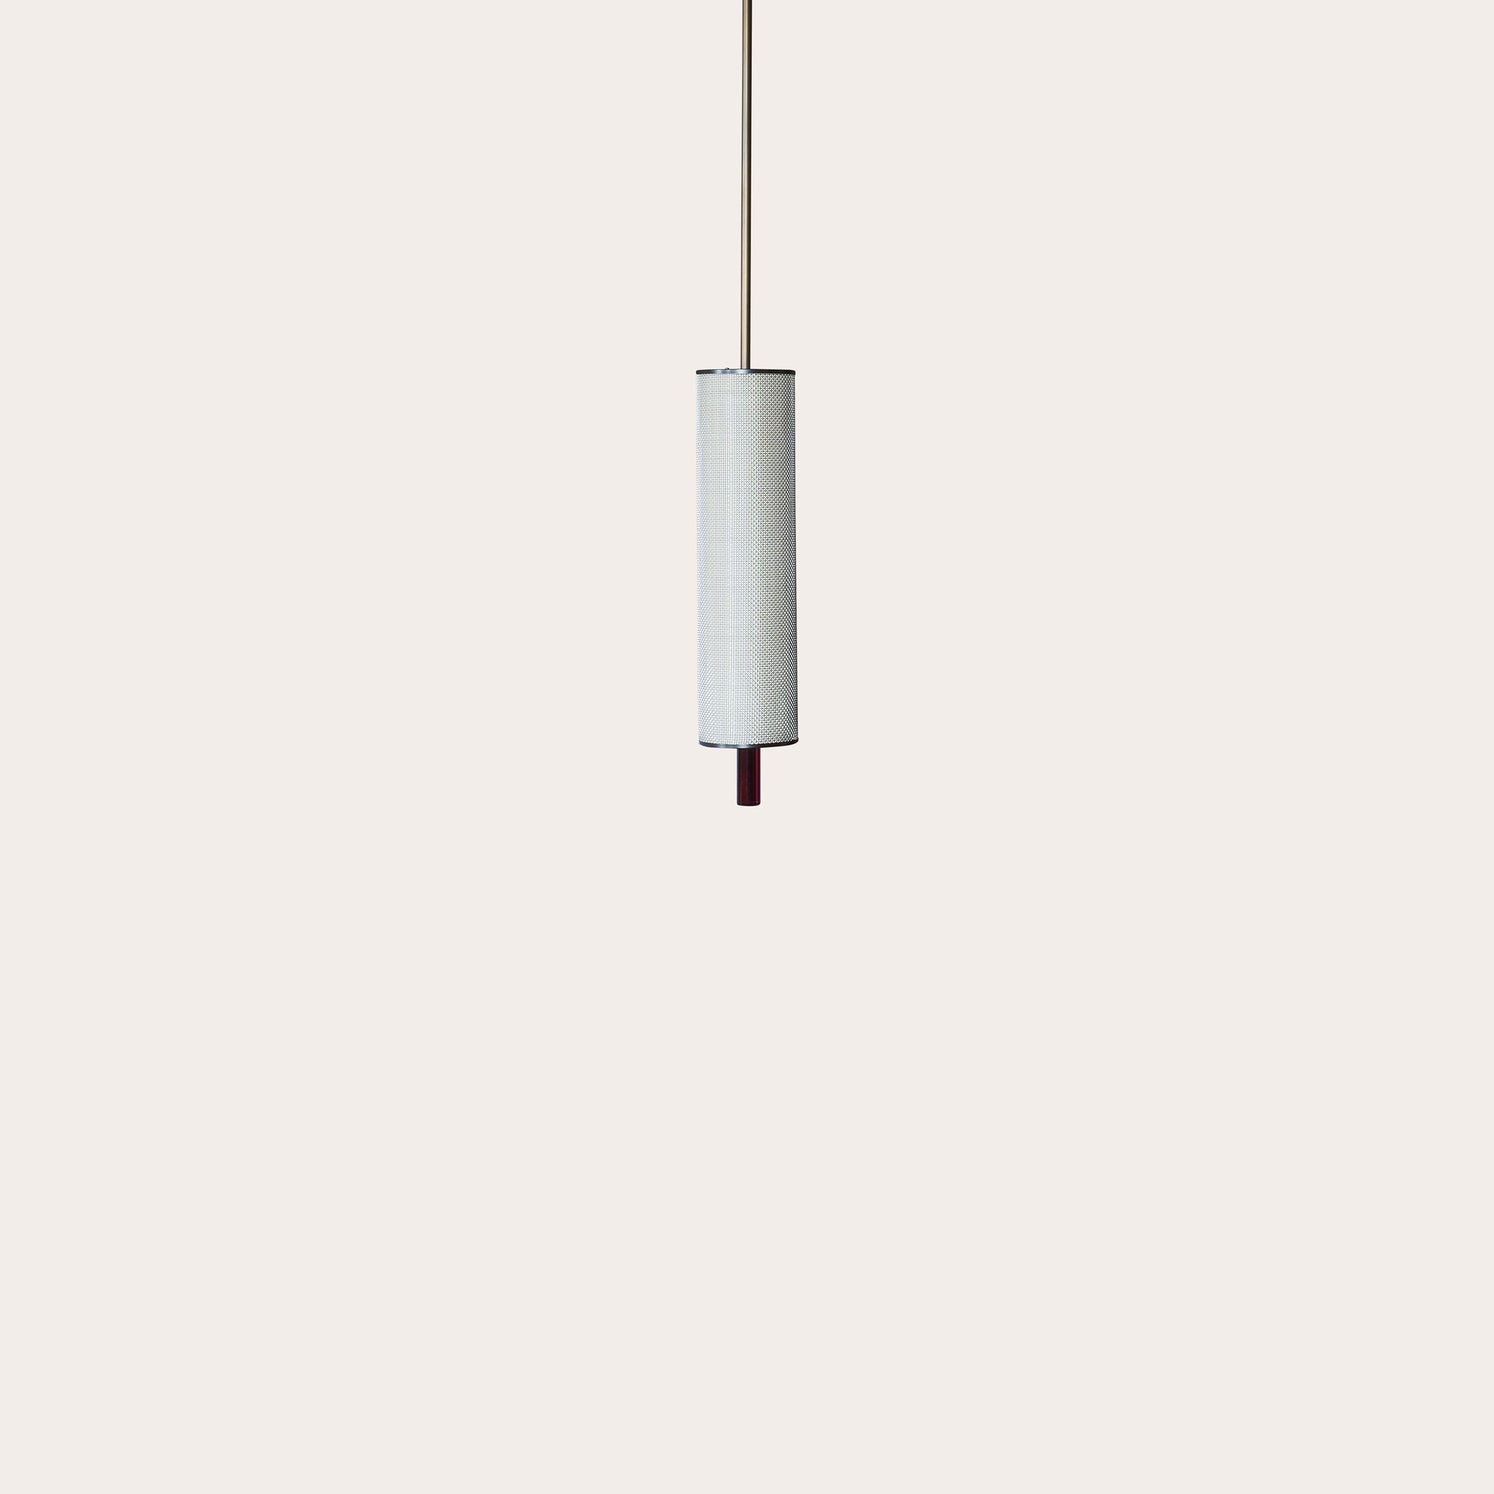 AMA Suspended Lighting Bruno Moinard Designer Furniture Sku: 773-160-10043